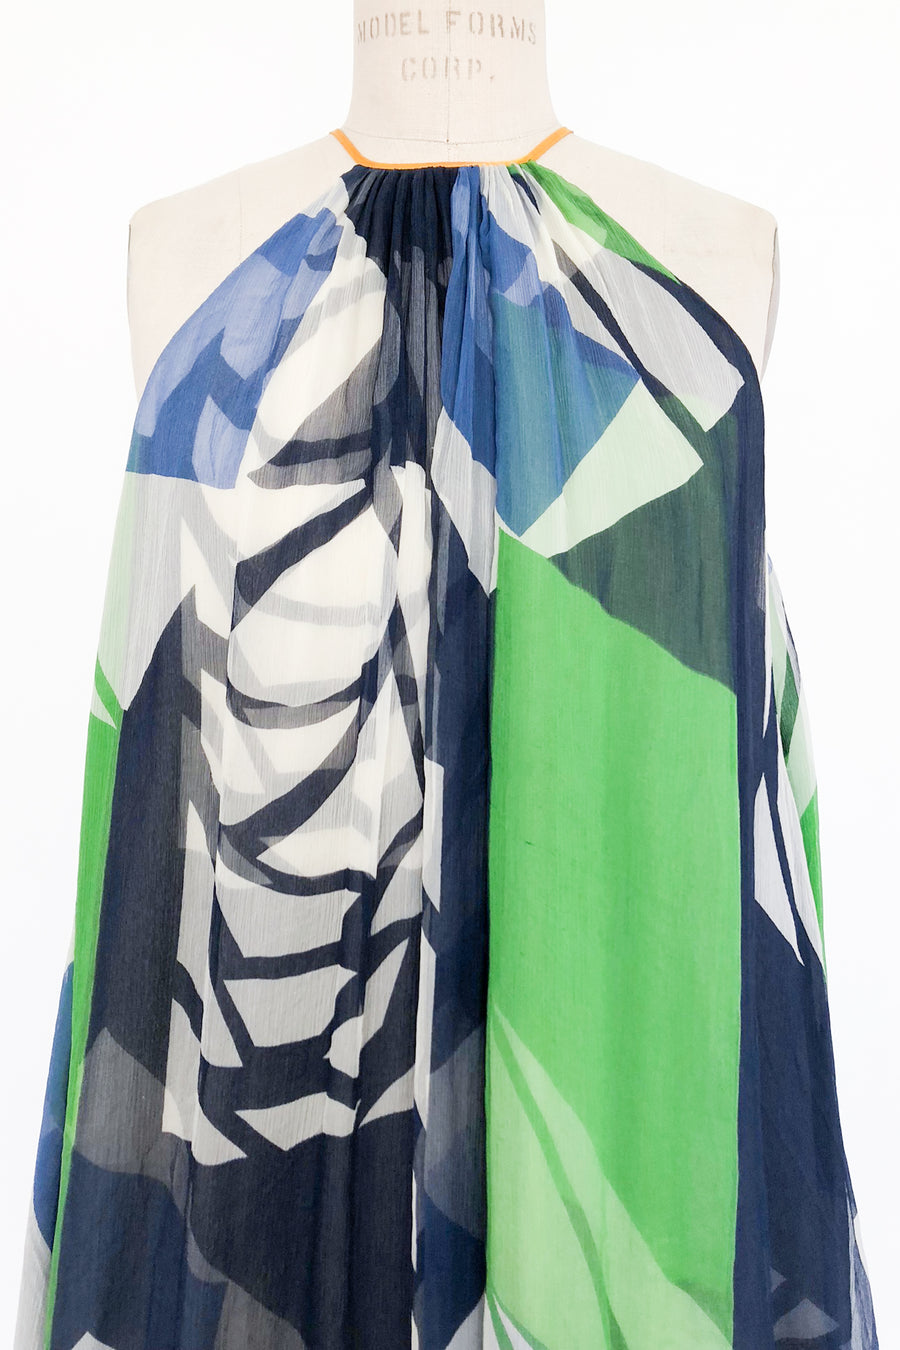 Abstract Blue and Green Floral Halter Dress - S/M